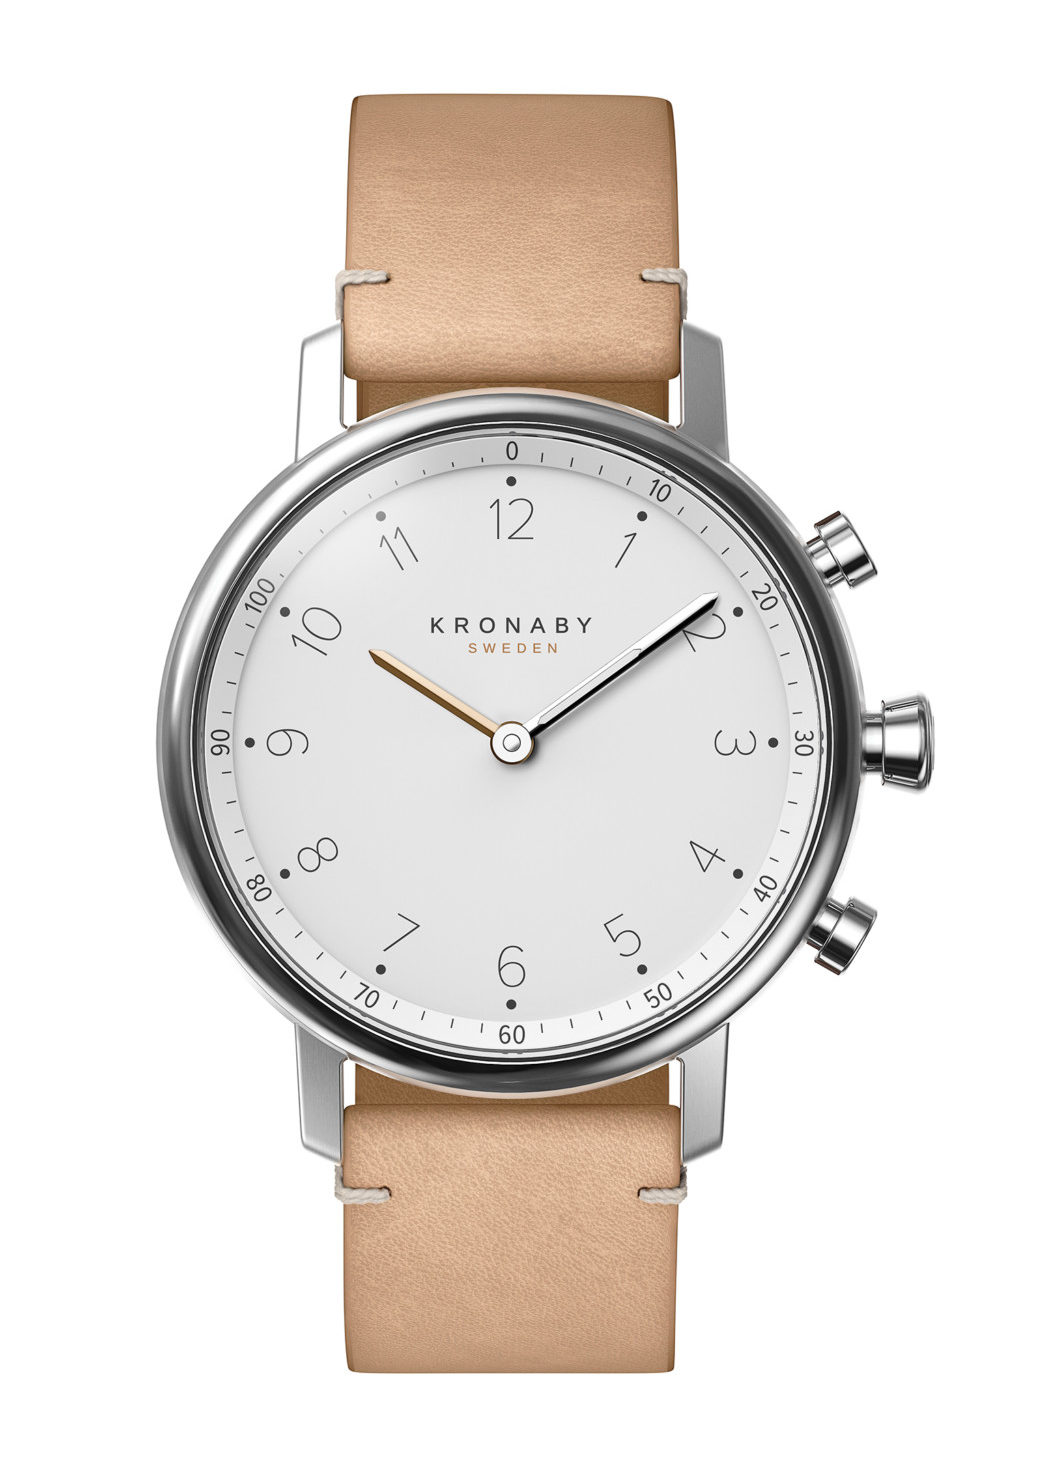 Pared down to the bare minimum, Kronaby's NORD is refined, with a nod to Kronaby's Nordic heritage. Key details include a matte finish dial and a case that combines stainless steel with double-domed, anti-reflective sapphire crystal. The case size is 38mm and the watch comes in four variants with 18mm bracelets in stainless steel, solid links/mesh or leather.